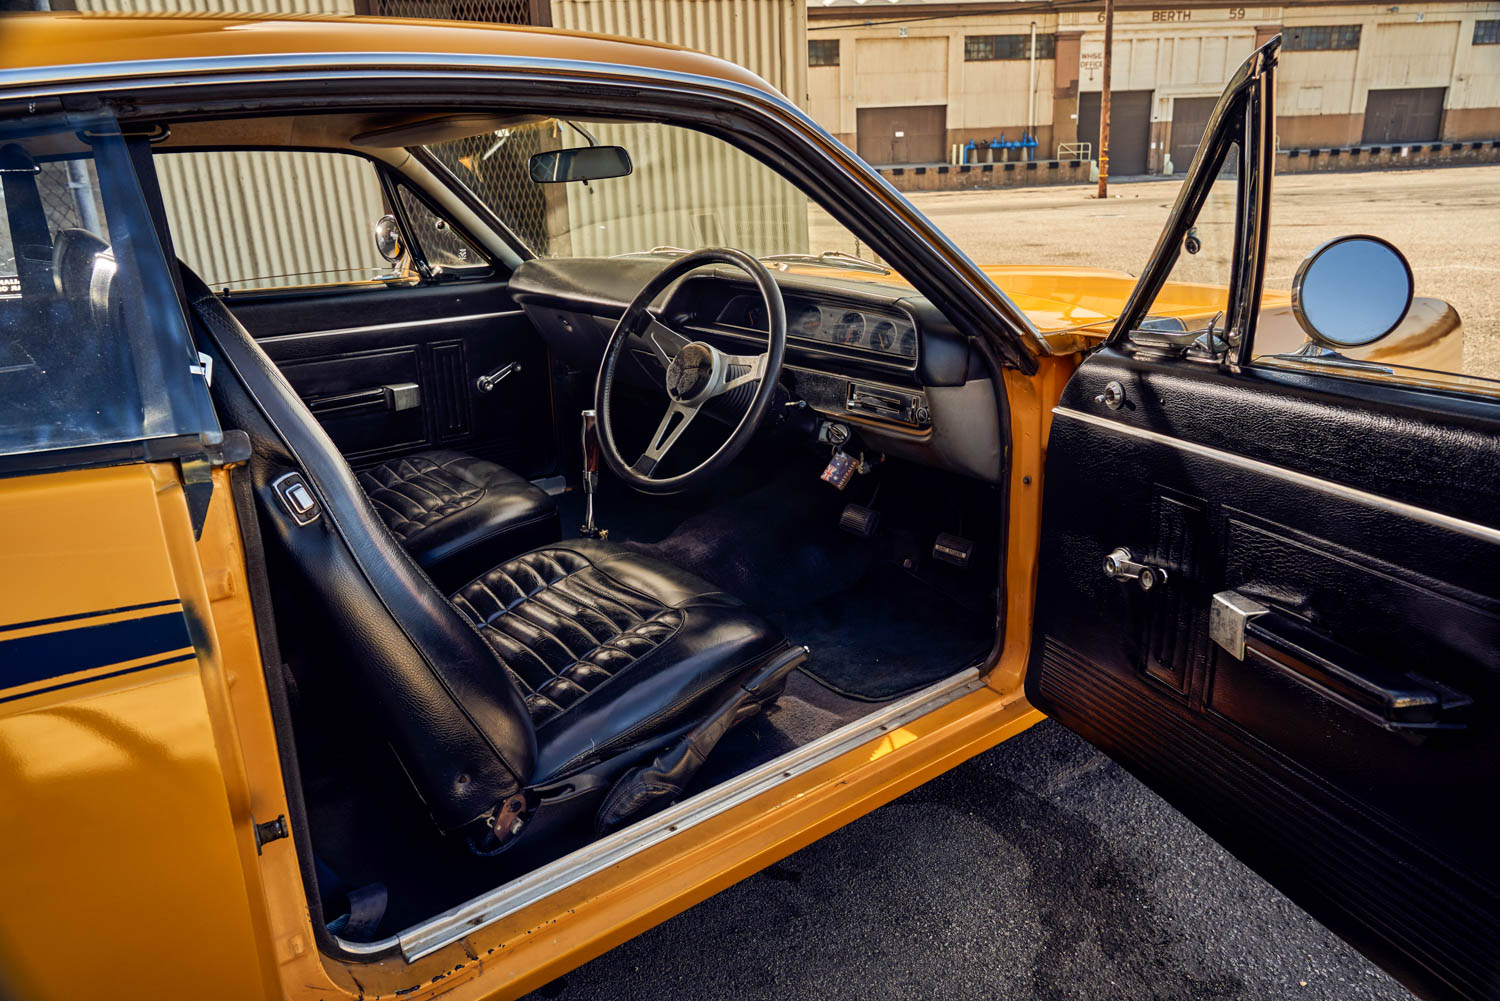 """The three-spoke steering wheel in the Aussie Charger, the tall shifter with its uniquely lefthanded pistol grip (the owner had it made), and the array of pedals with the center one clearly marked """"DISC BRAKES"""" all sit in easy relationship to one another. Driving on the right, though, takes some getting used to."""